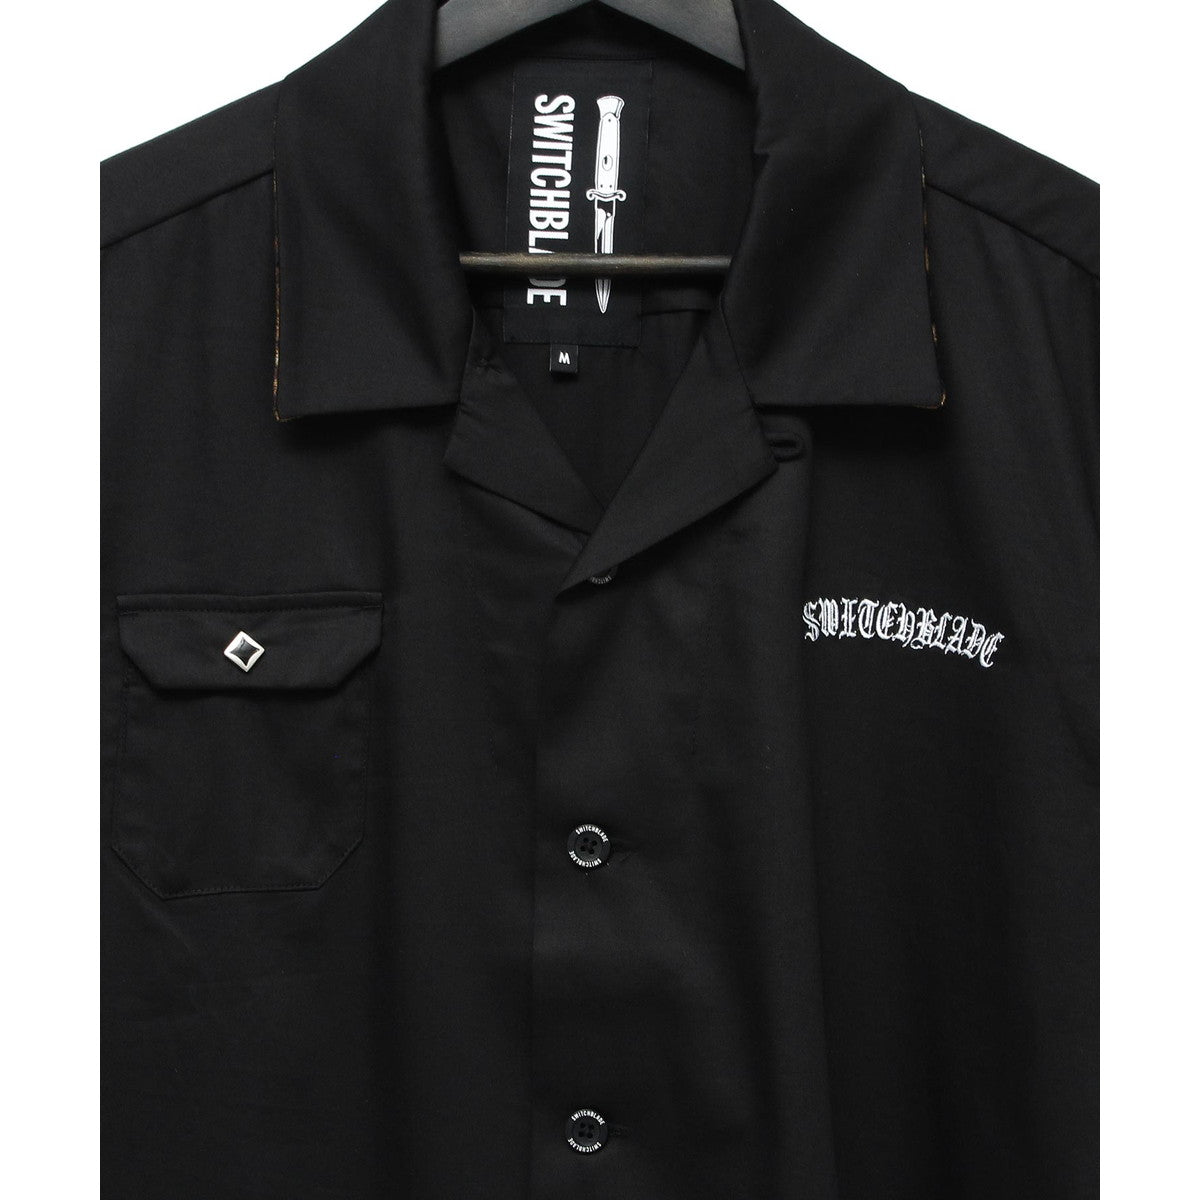 SWITCHBLADE EMBROIDERY SHORT SLEEVE SHIRT / BLACK